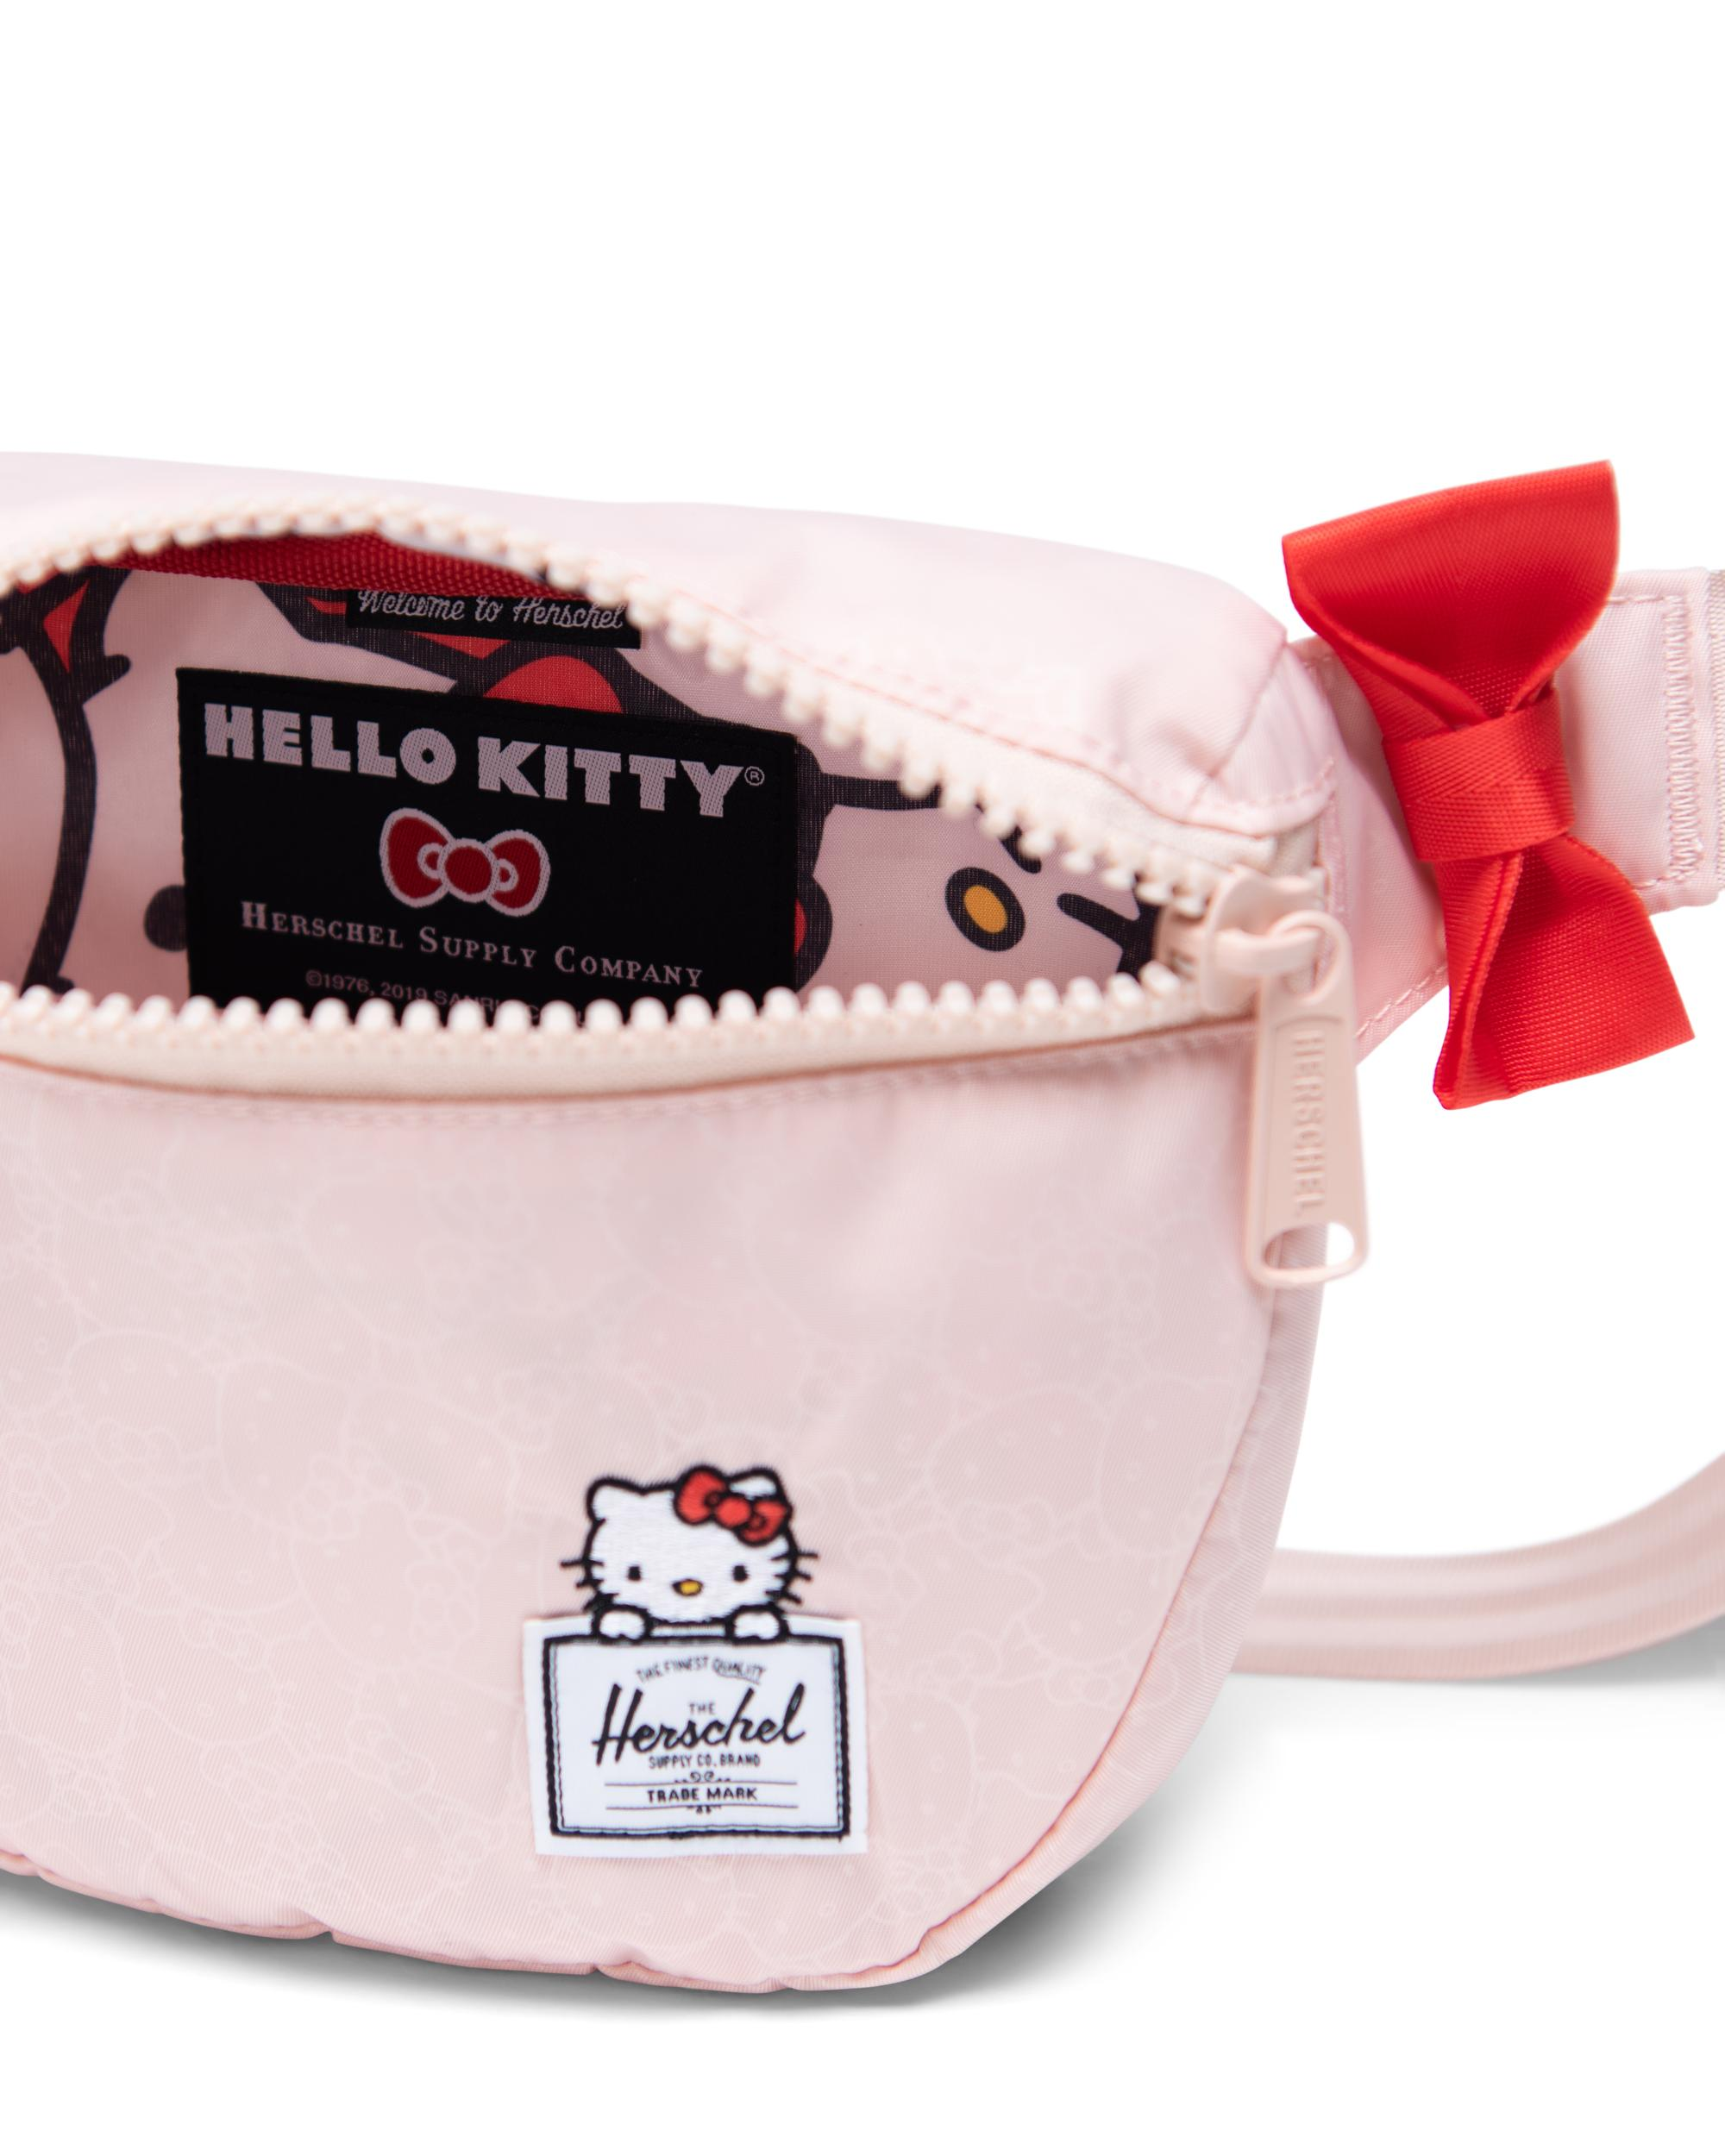 3c3141f40b4 ... Fabric liner with magnified Hello Kitty all-over print ...